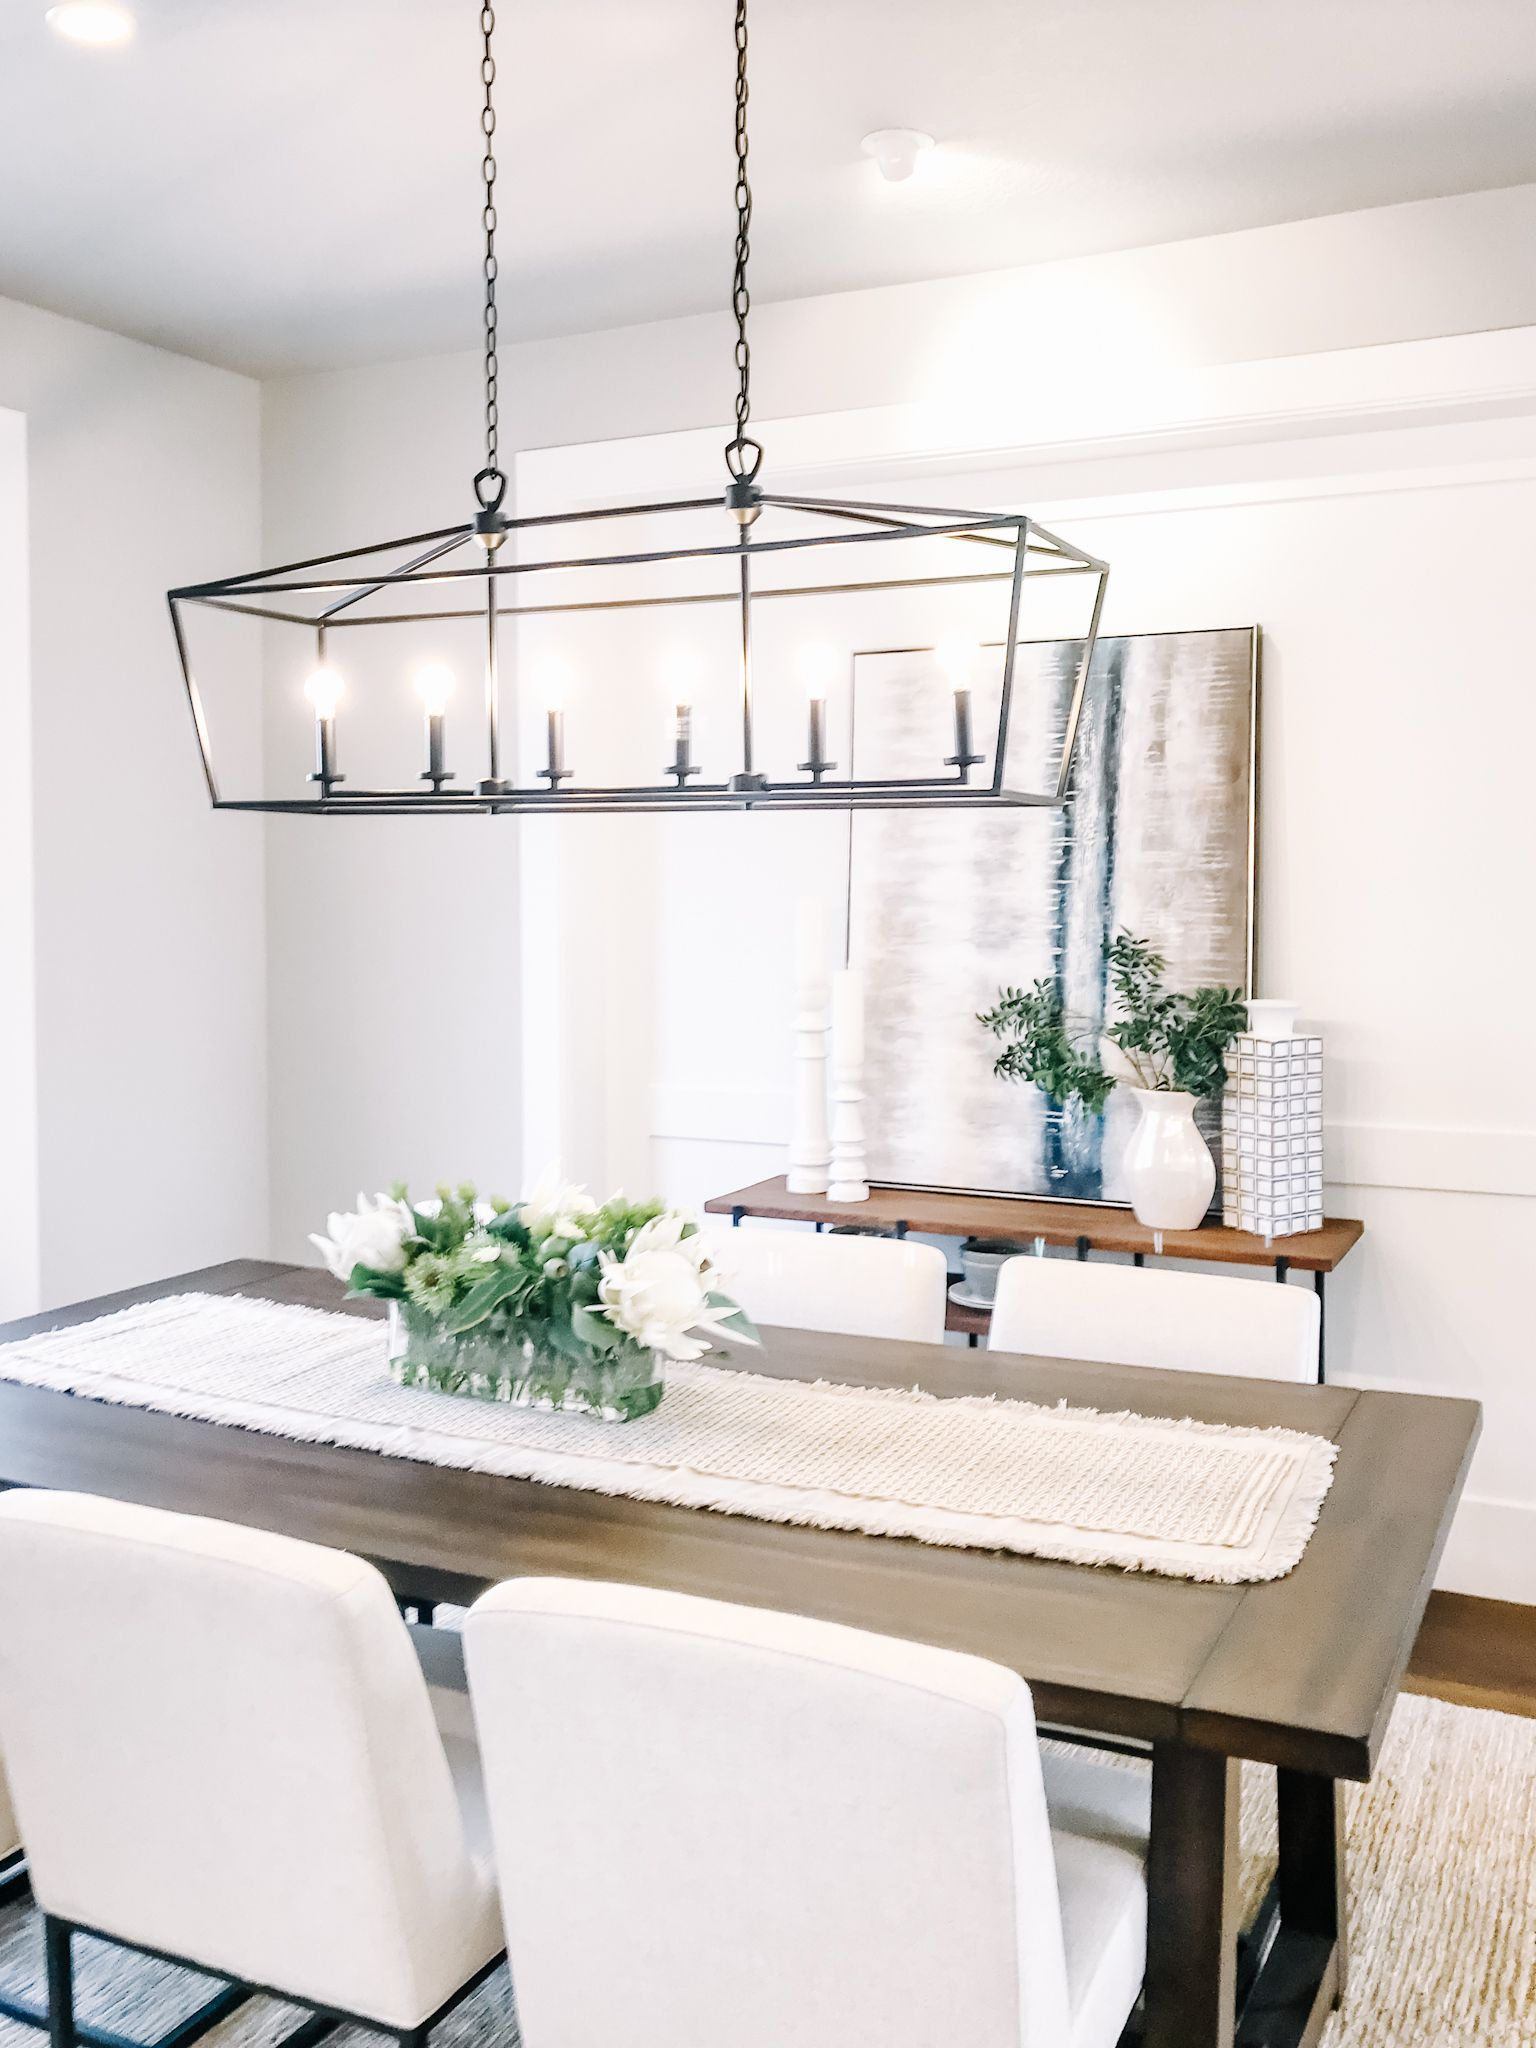 Dining room styling ideas with a low pile cream rug ...